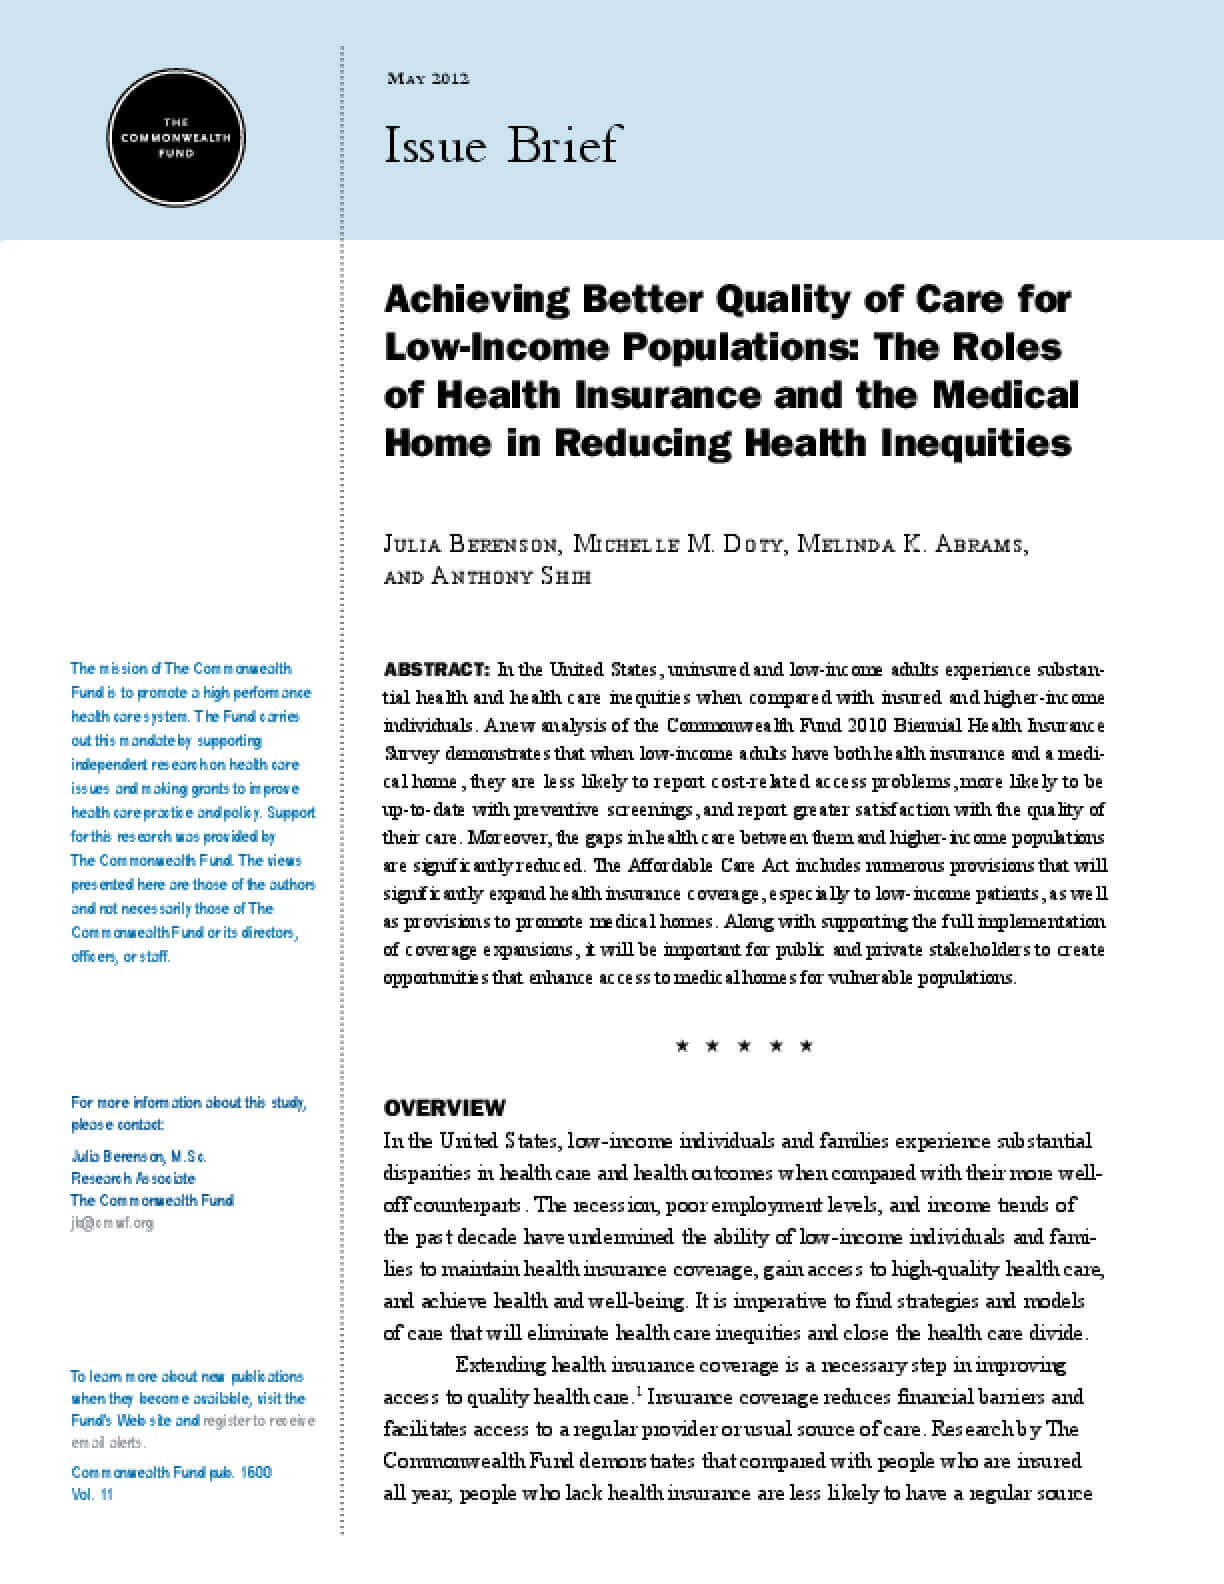 Achieving Better Quality of Care for Low-Income Populations: The Roles of Health Insurance and the Medical Home in Reducing Health Inequities